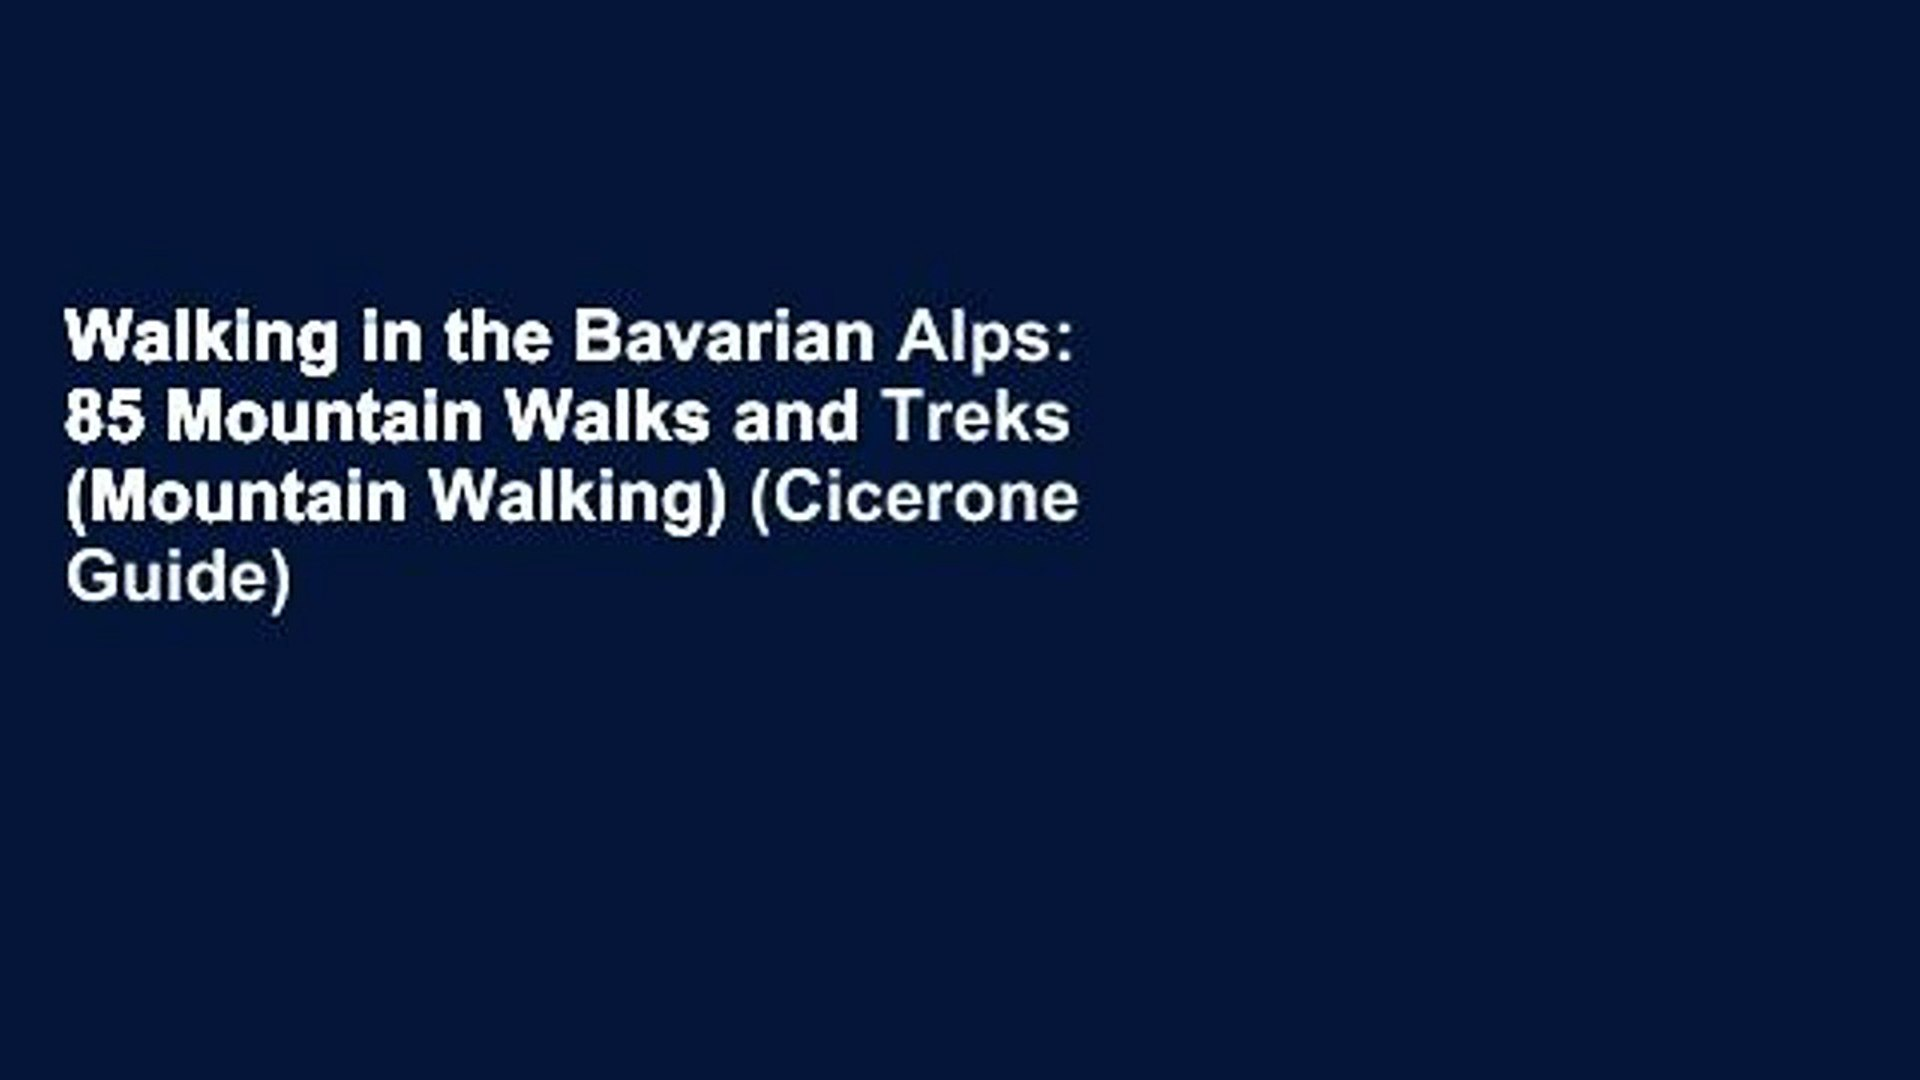 Walking in the Bavarian Alps: 85 Mountain Walks and Treks (Cicerone Guide)